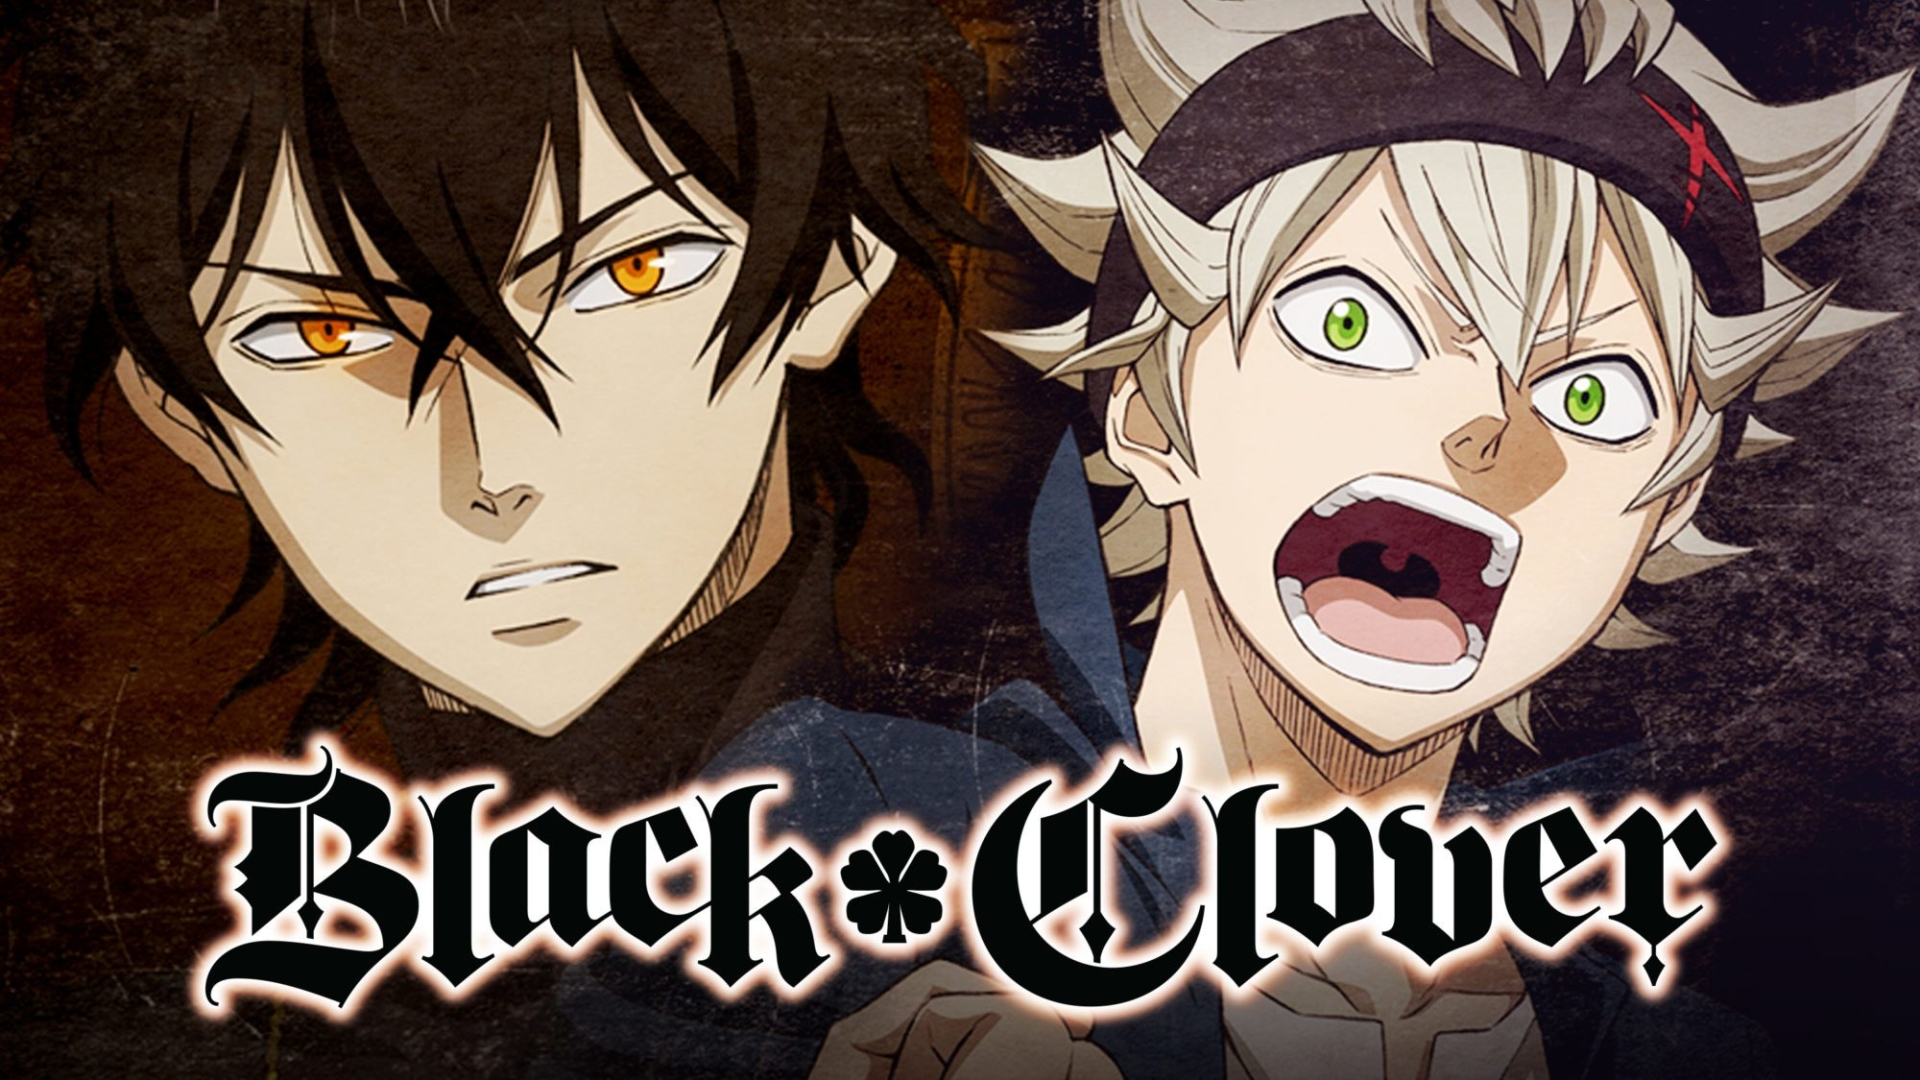 Black Clover Chapter 264 Release Date, Spoilers, Leaks, Raw Scans and Manga  Read Online - BlockToro